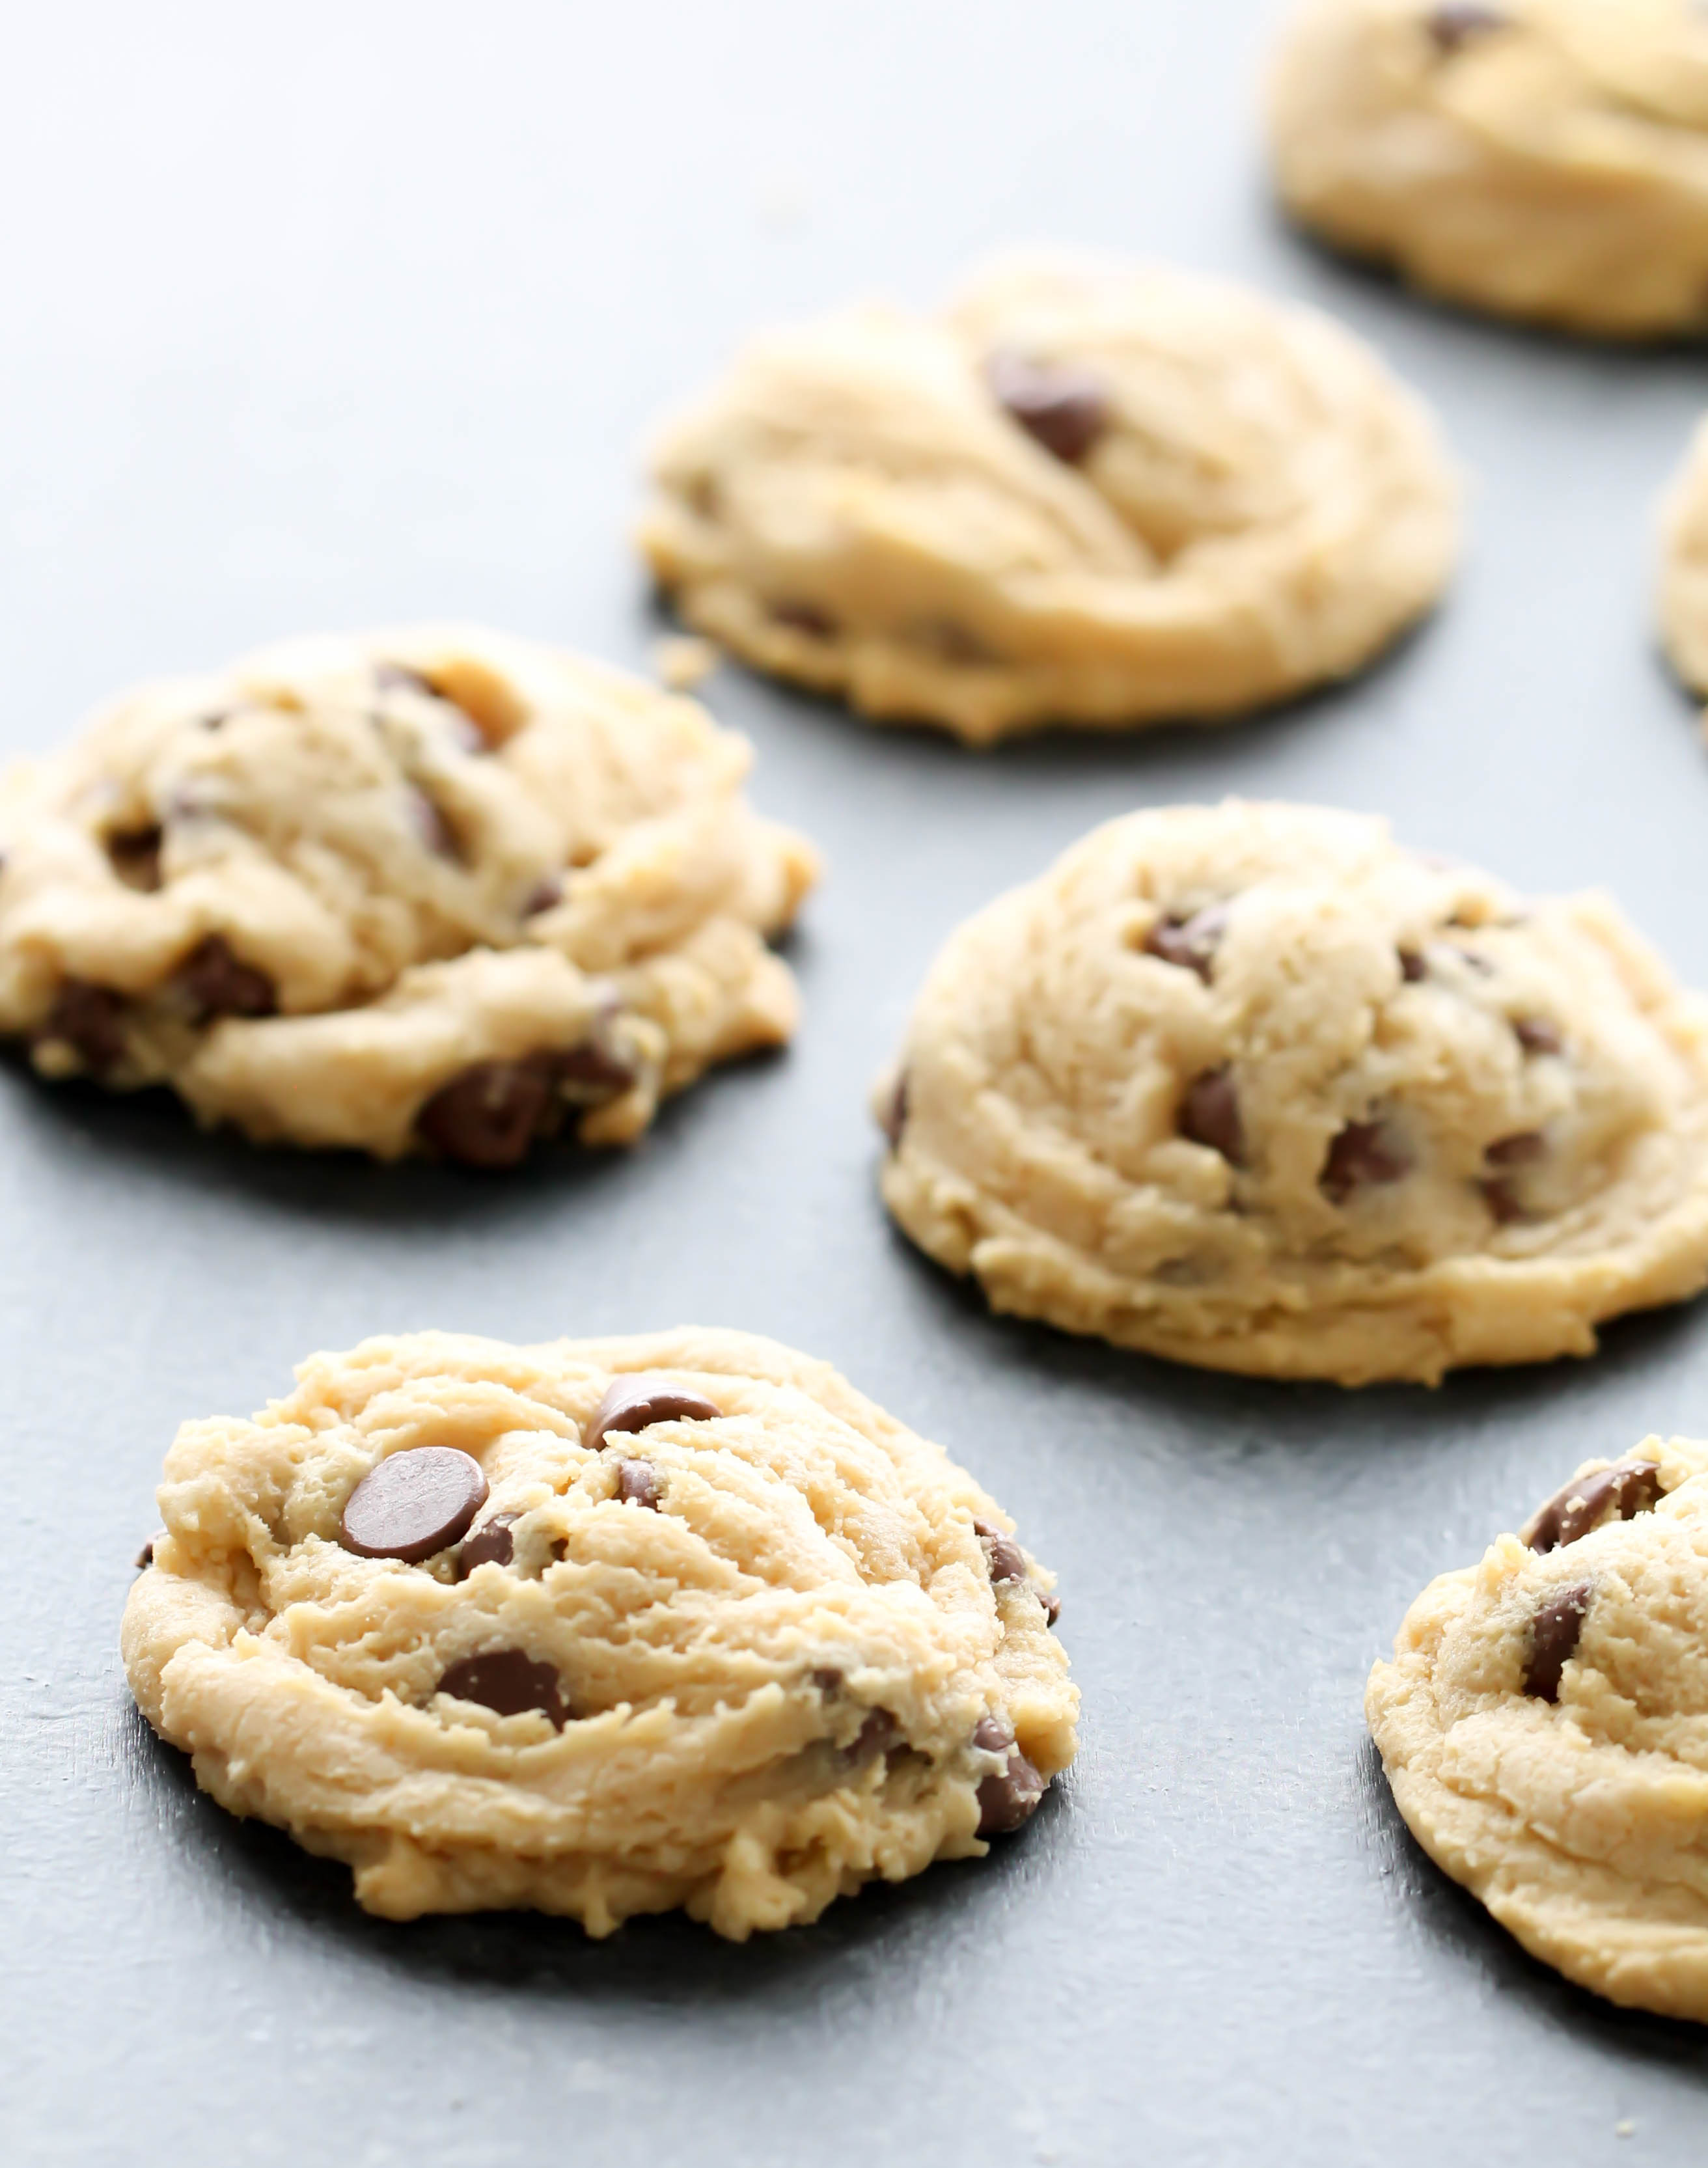 Chocolate Chip Pudding Cookies on counter top